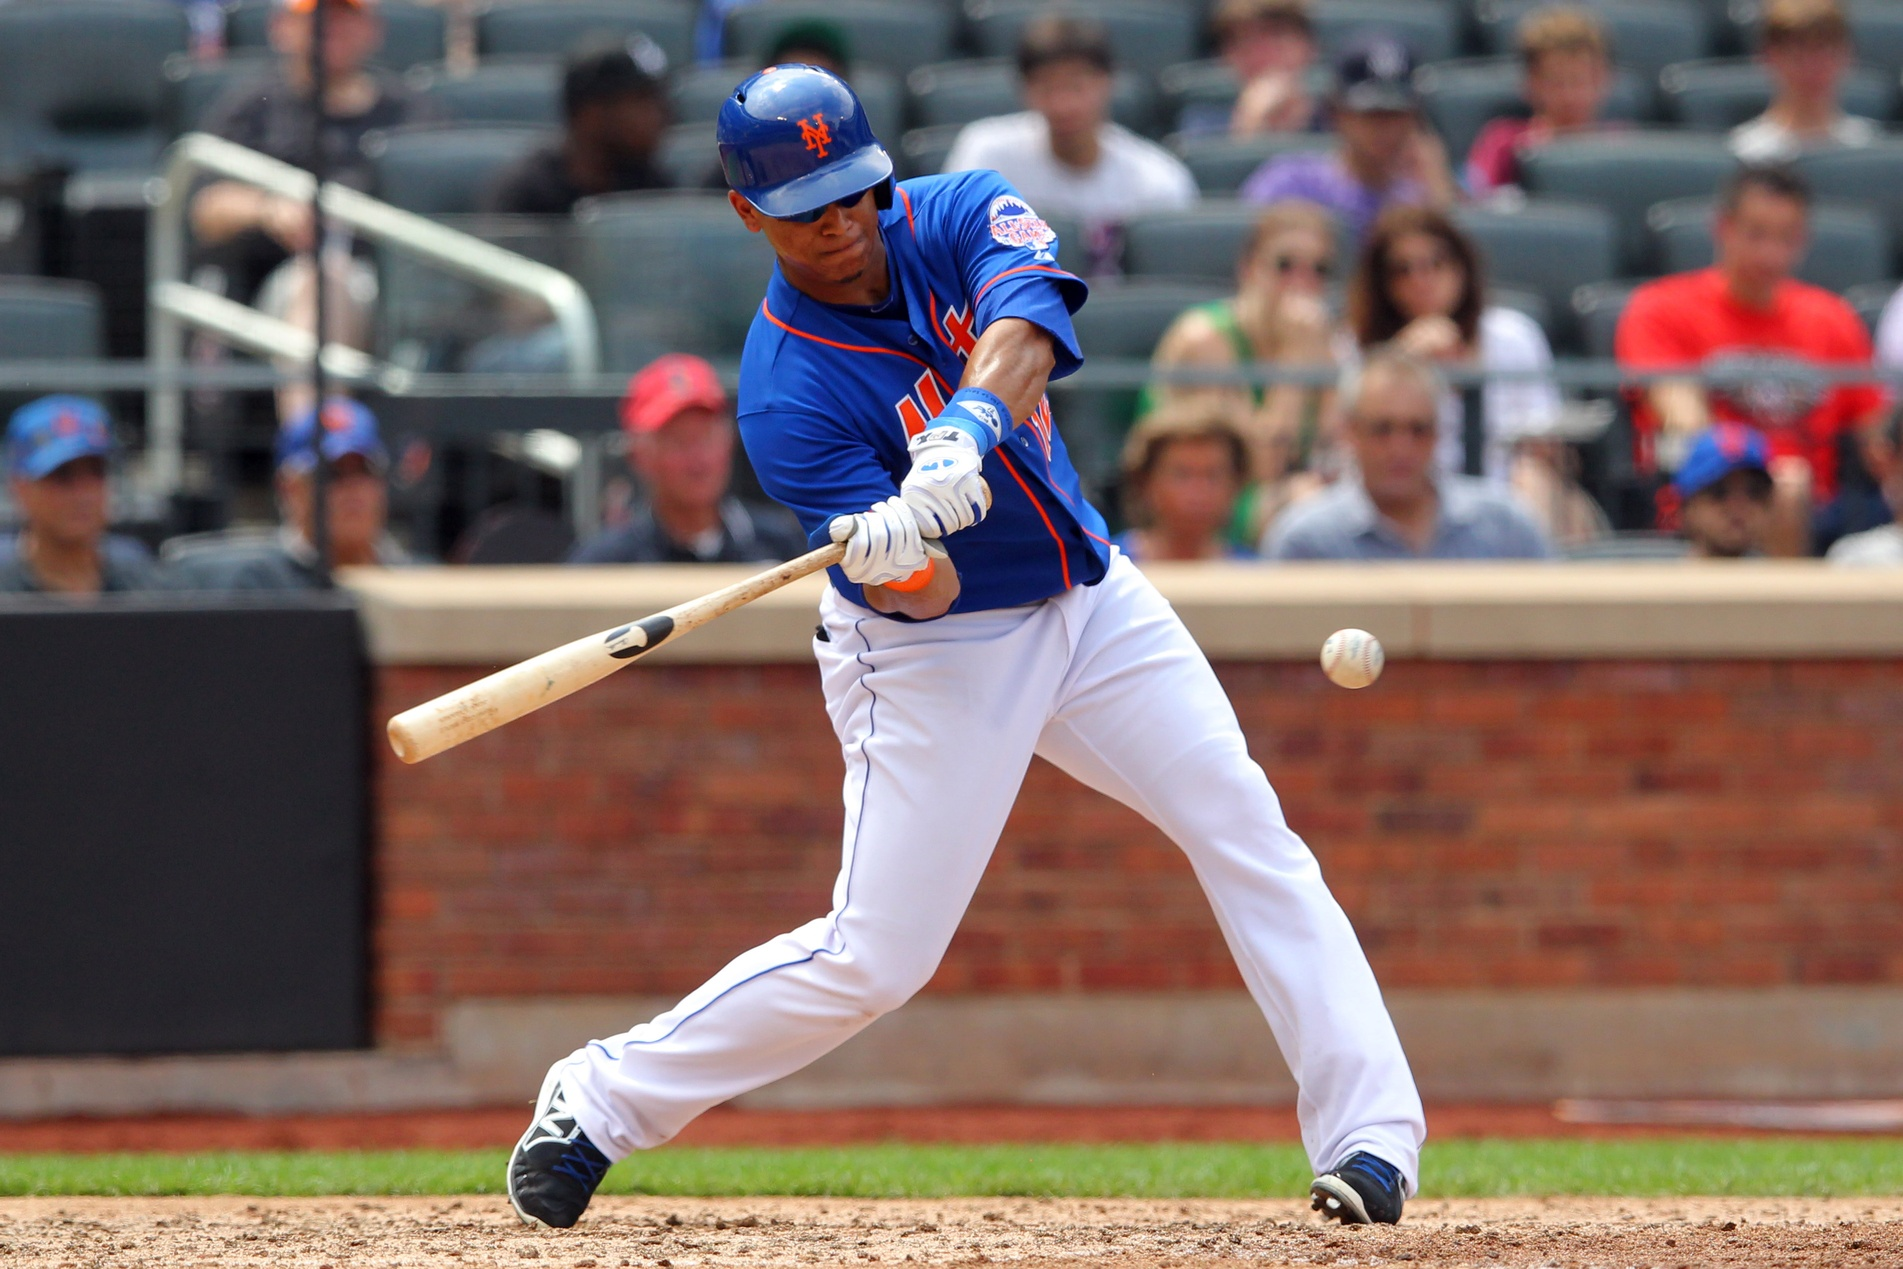 Will Juan Lagares Lose Playing Time In Center Field To Chris Young?